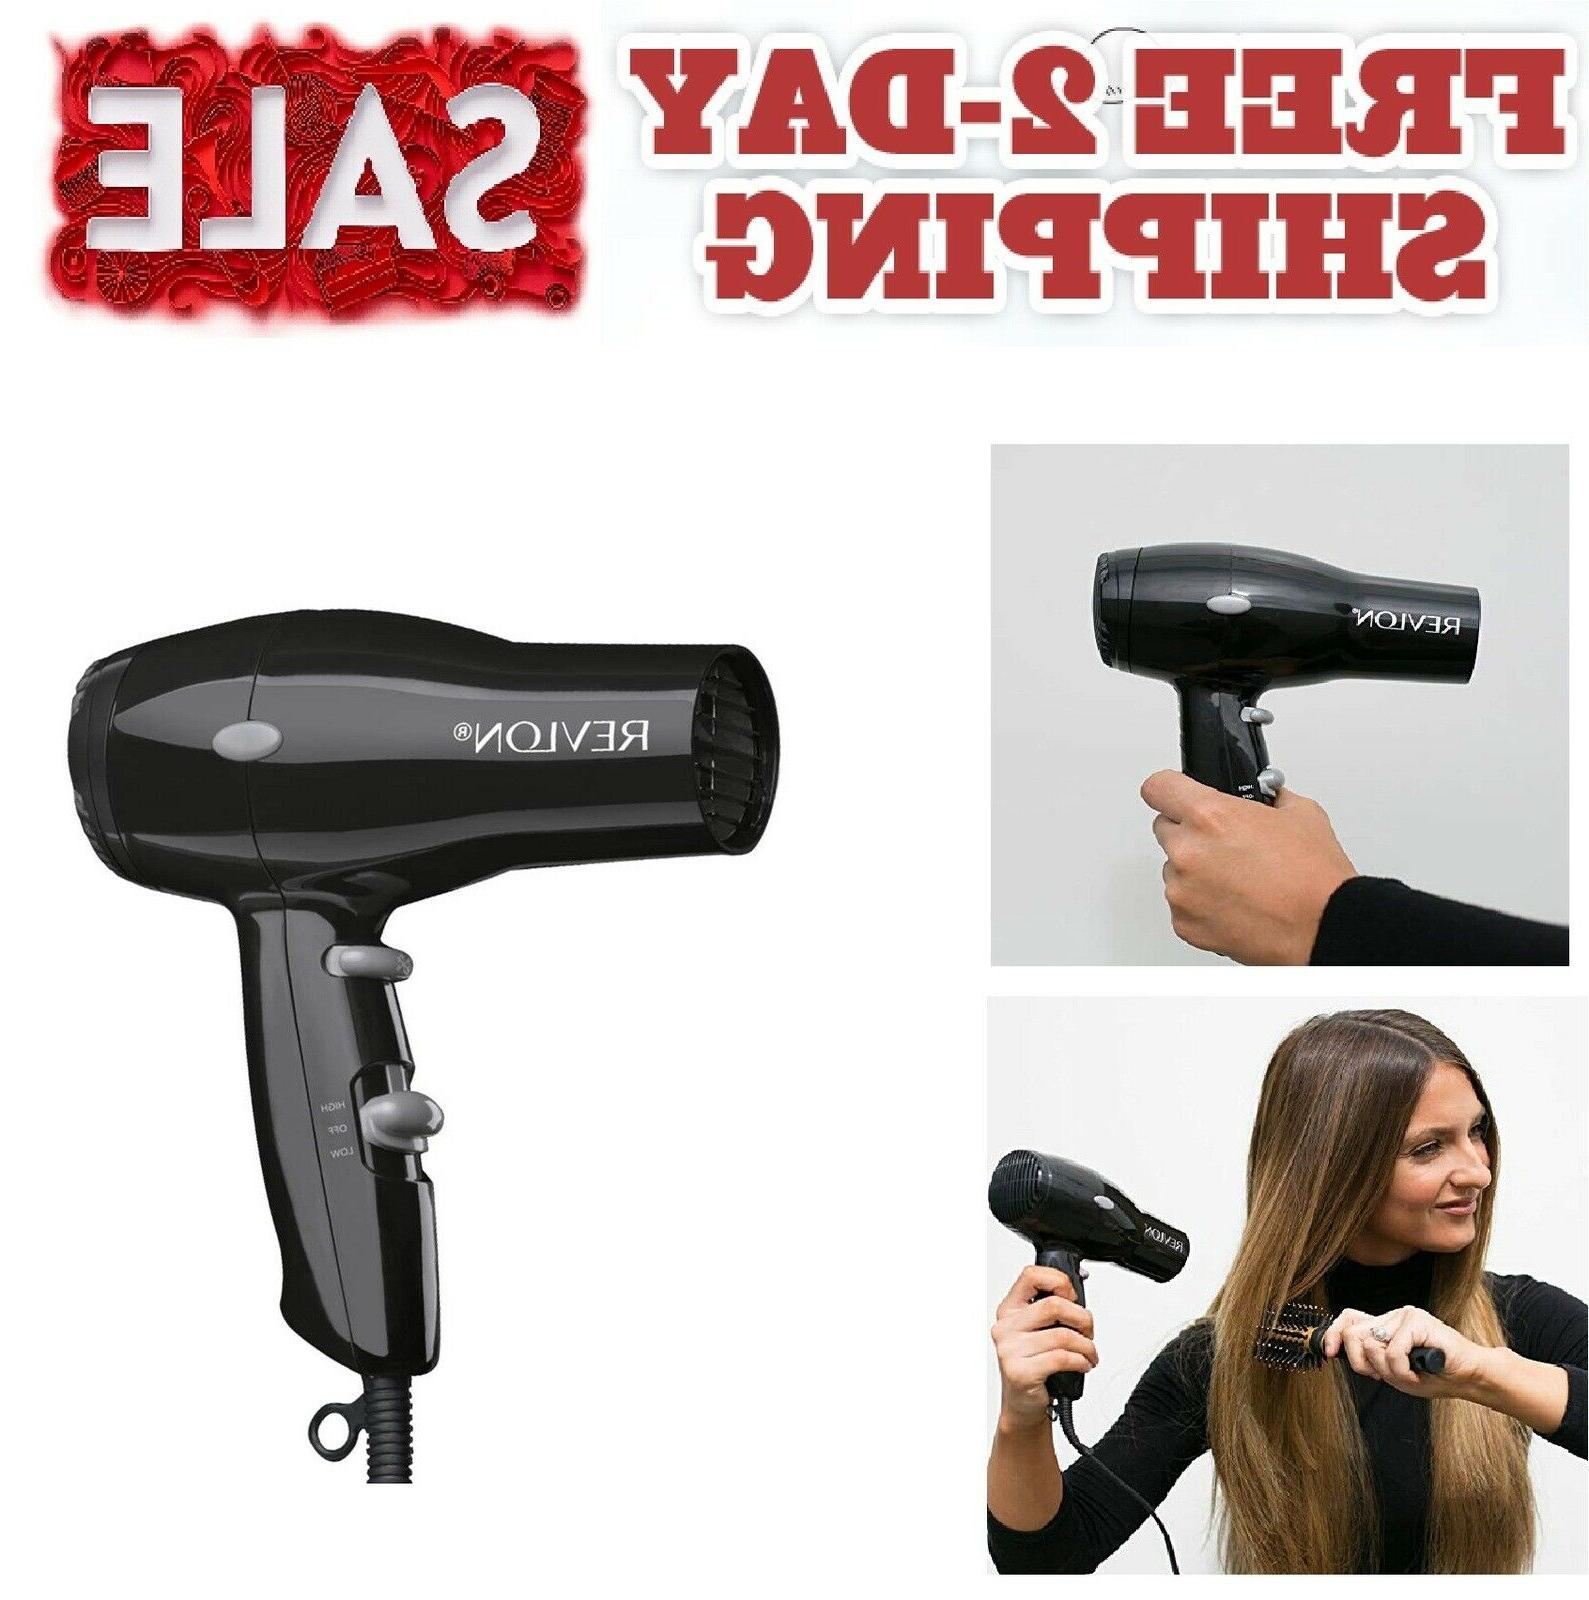 small hair dryer compact mini travel blower